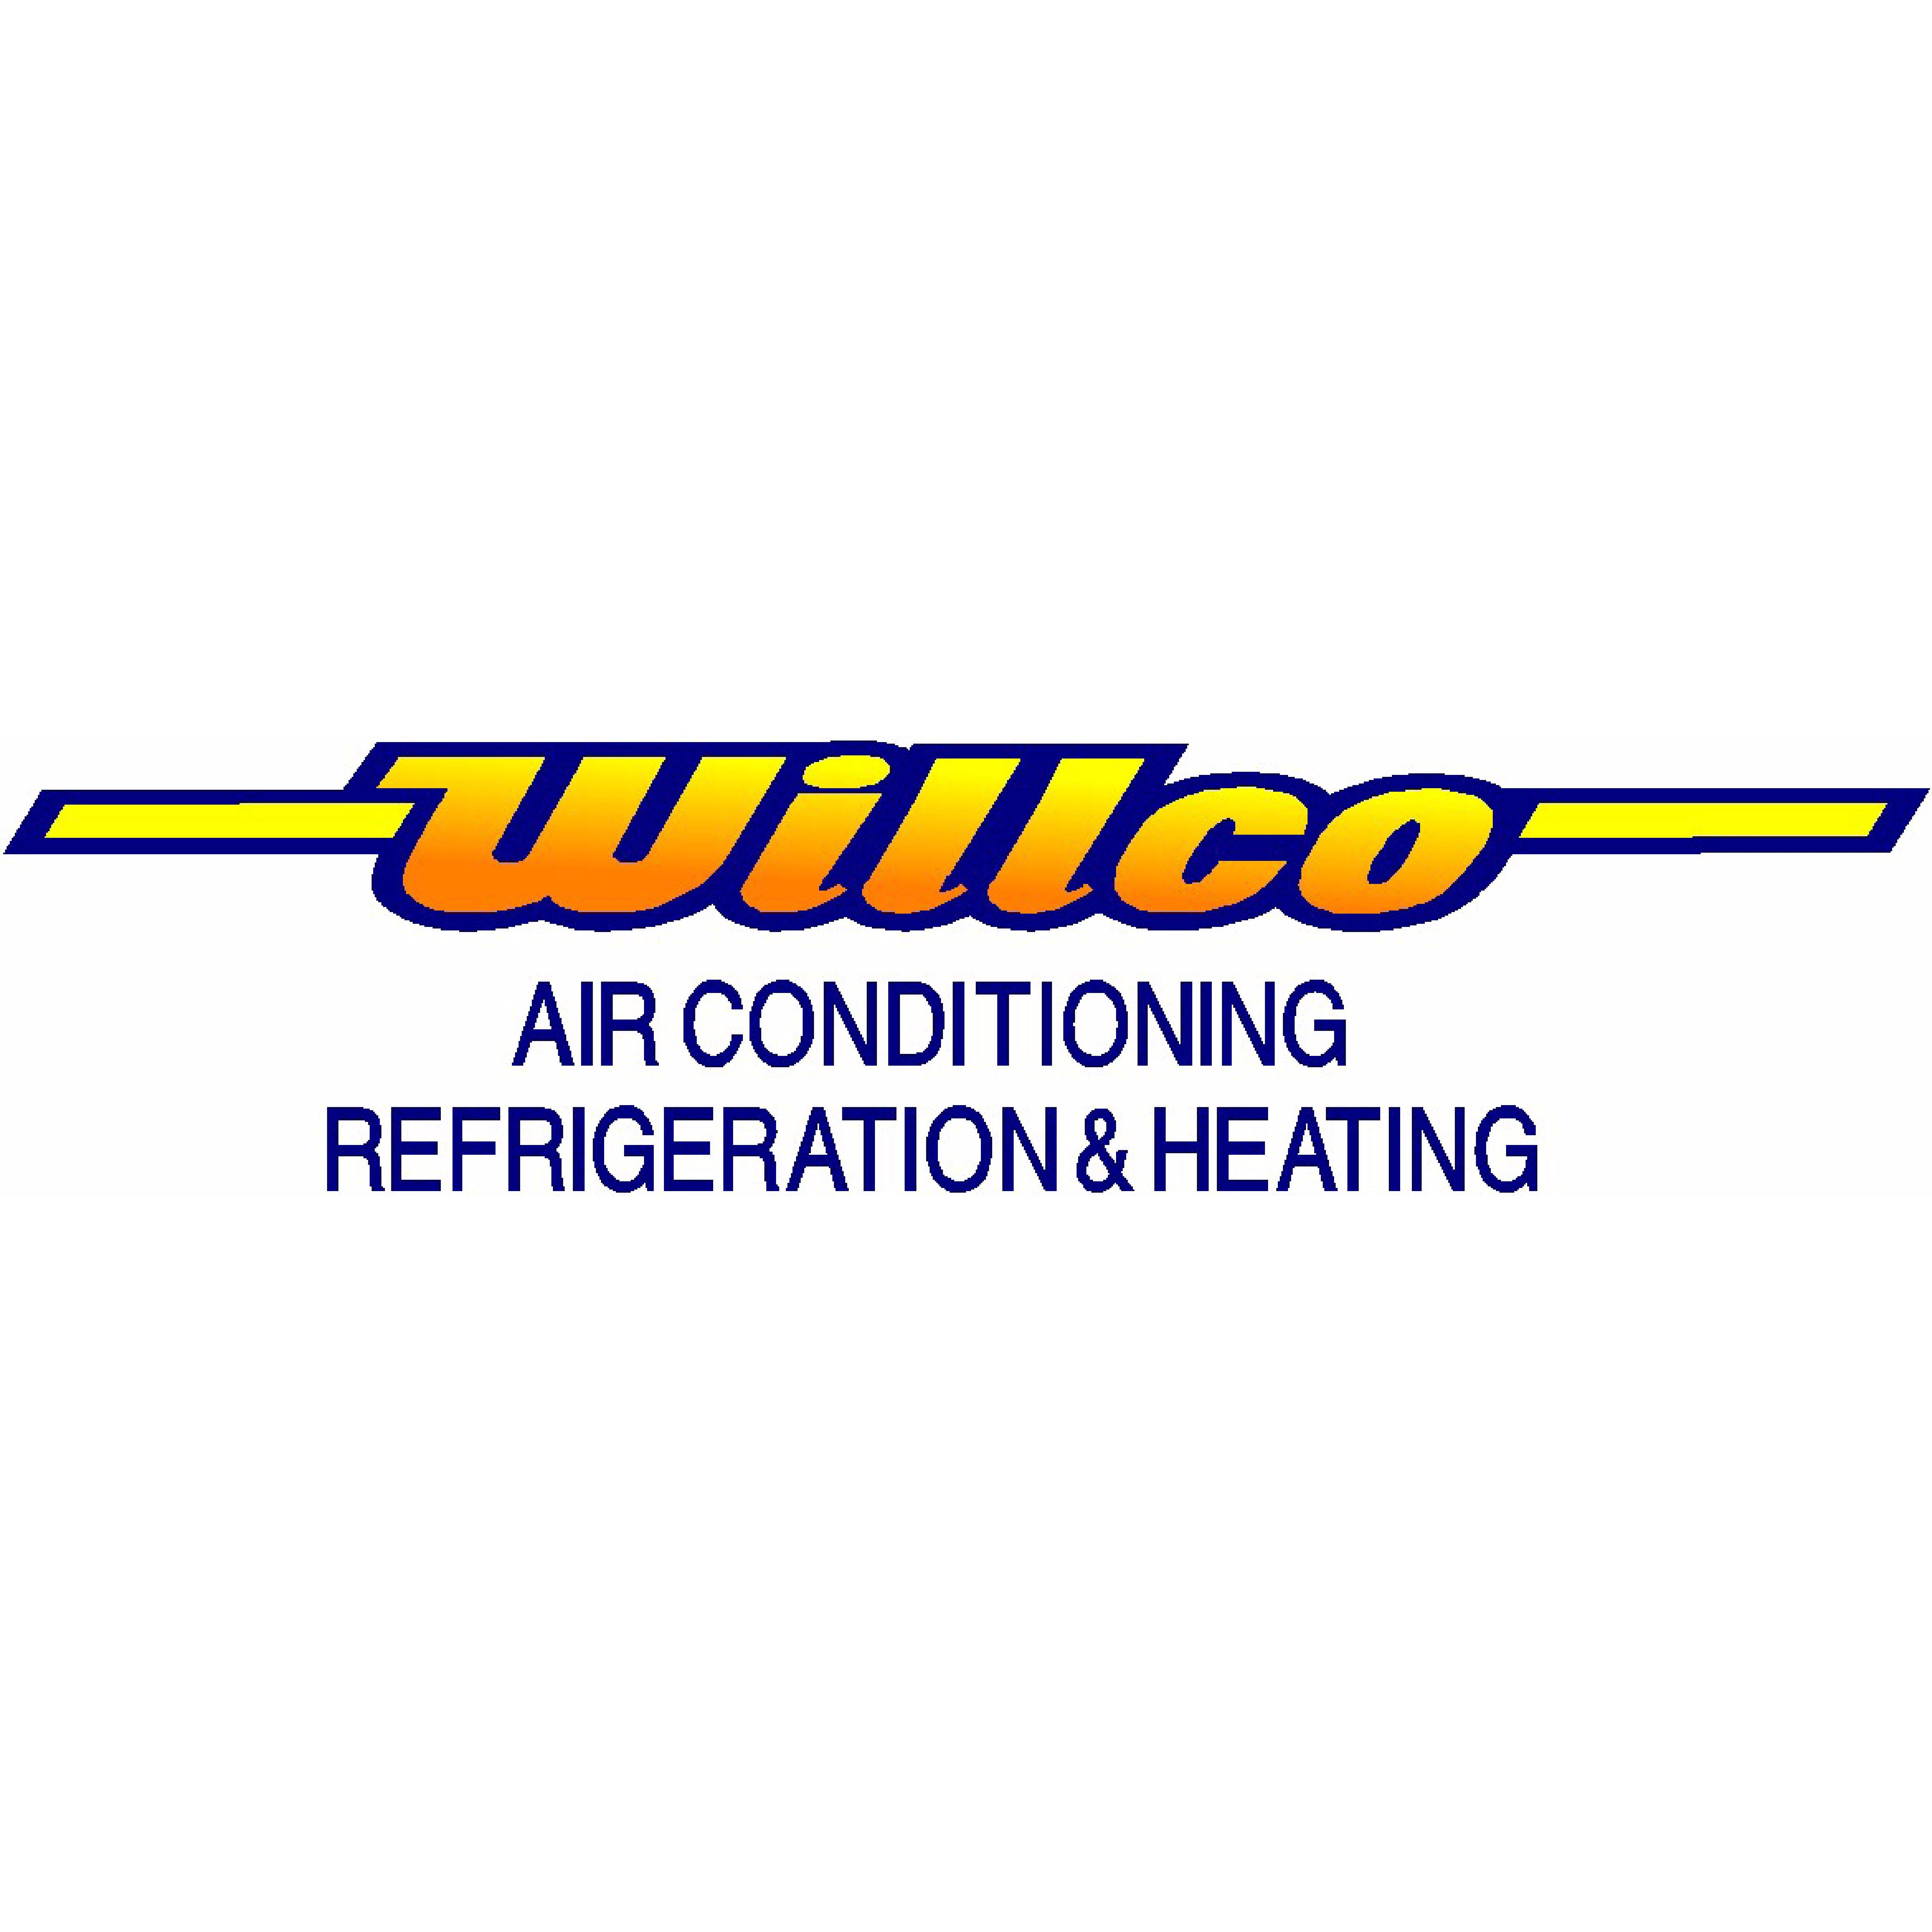 Willco Air Conditioning, Refrigeration & Heating